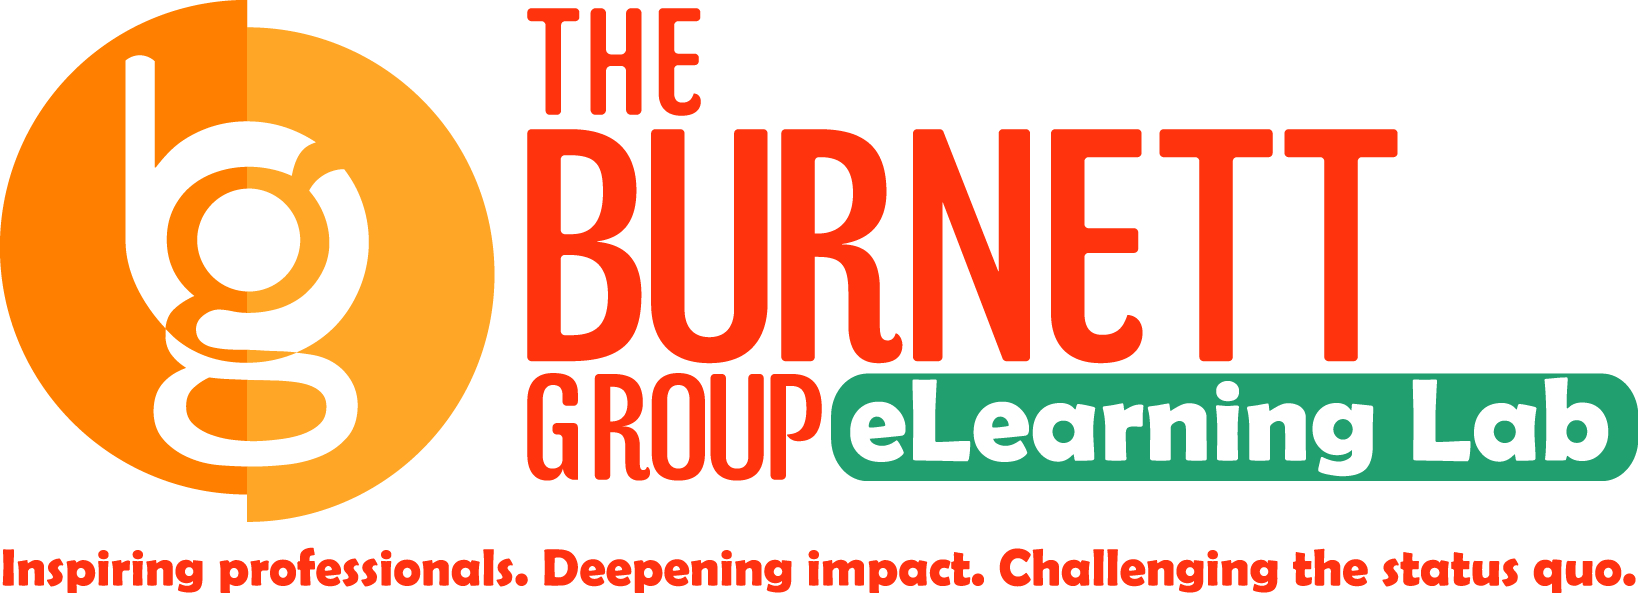 Continuing to remove barriers for professionals seeking to learn, grow and develop, The Burnett Group is excited to bring transformative content directly to the comfort of your home. See what's on the calendar and register by clicking the logo above. -